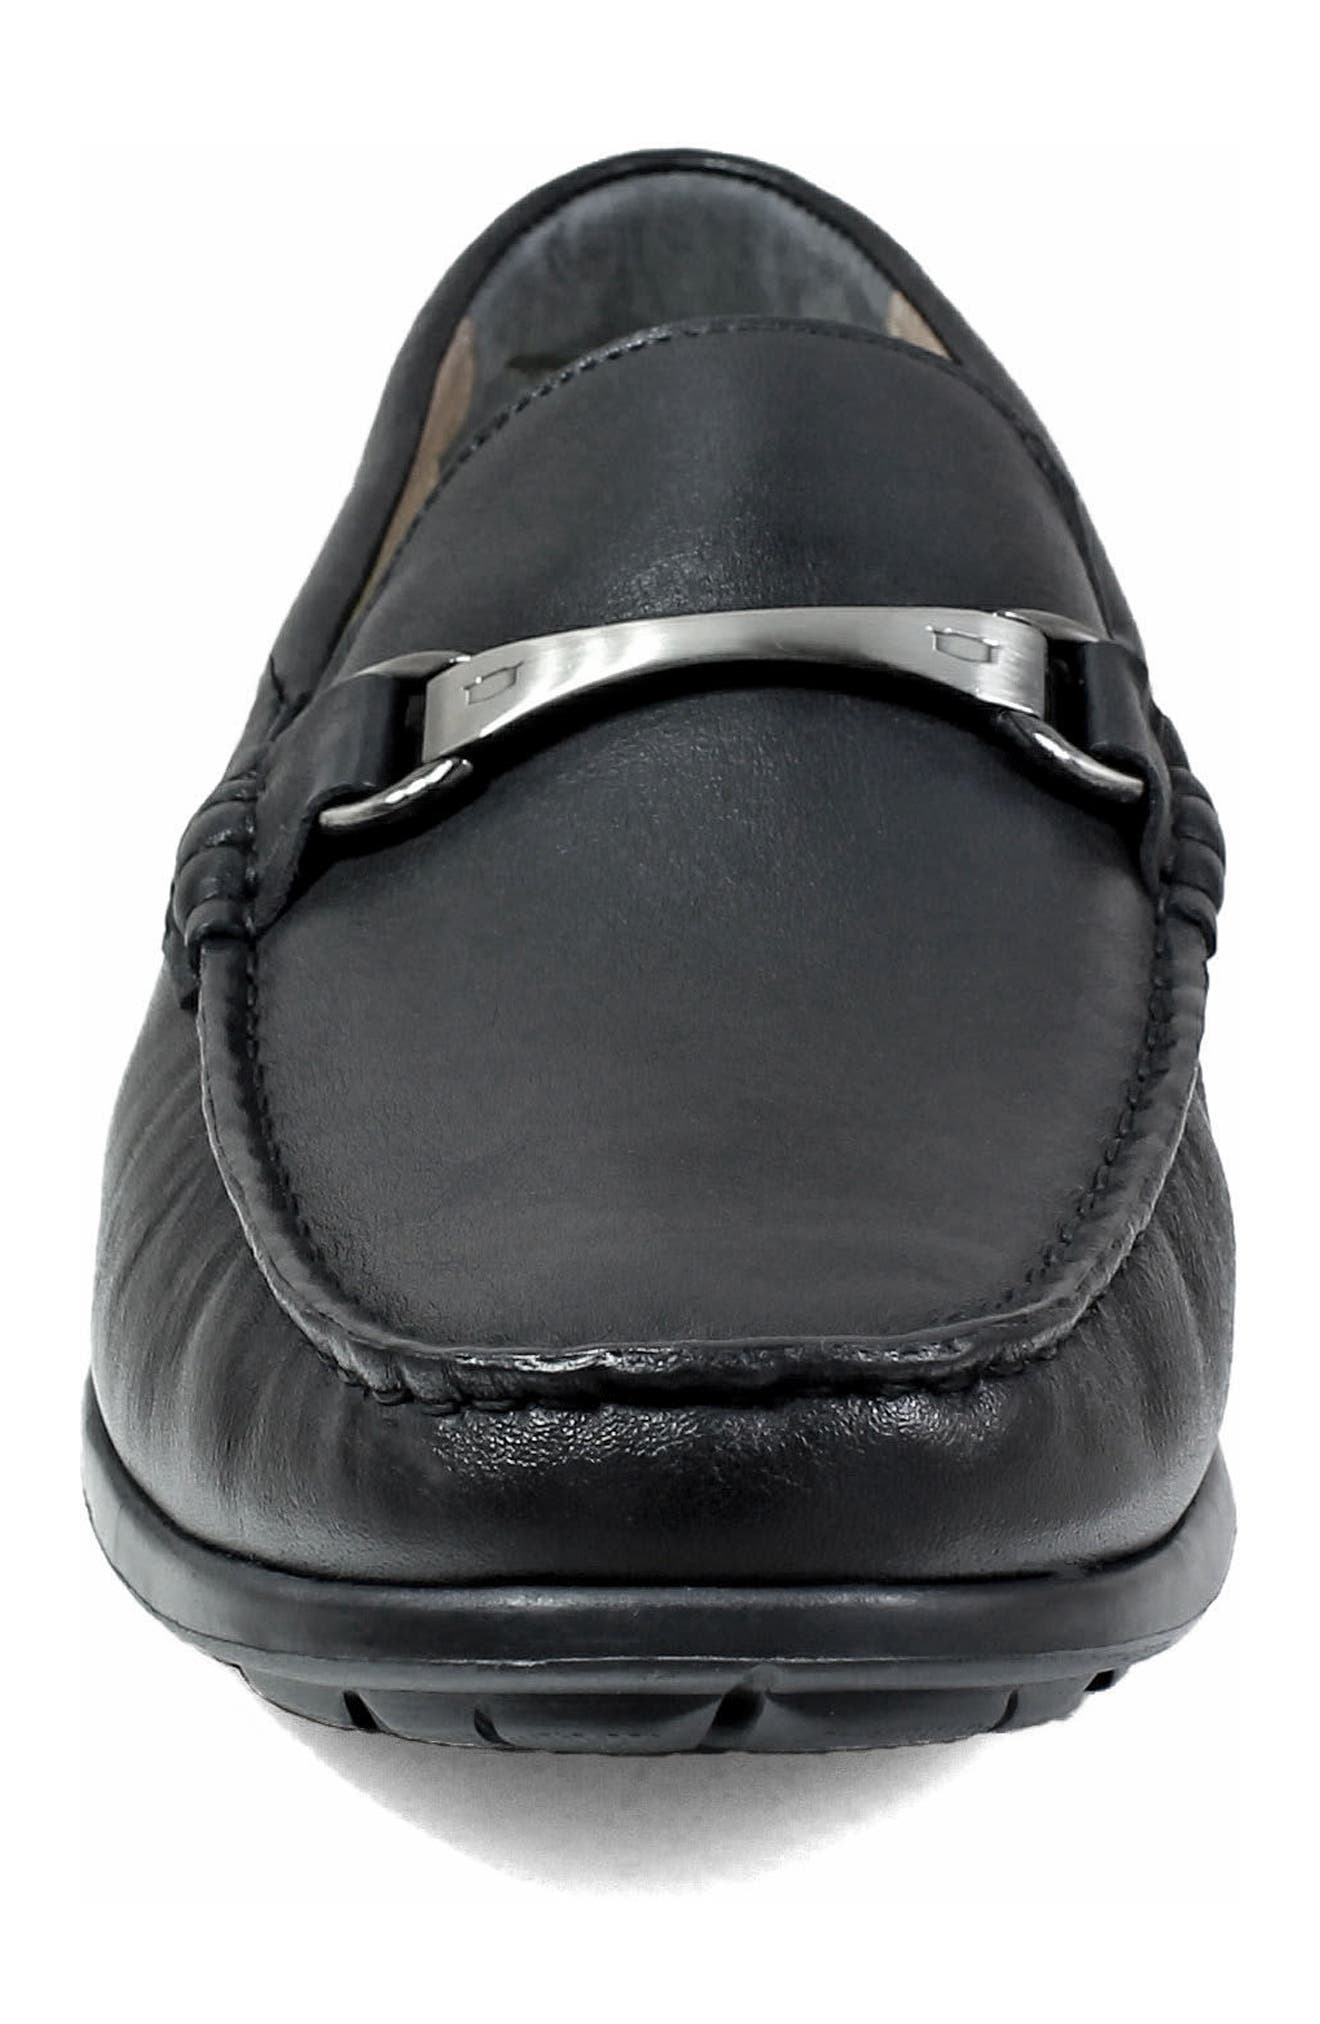 Comfortech Bit Loafer,                             Alternate thumbnail 4, color,                             Black Smooth